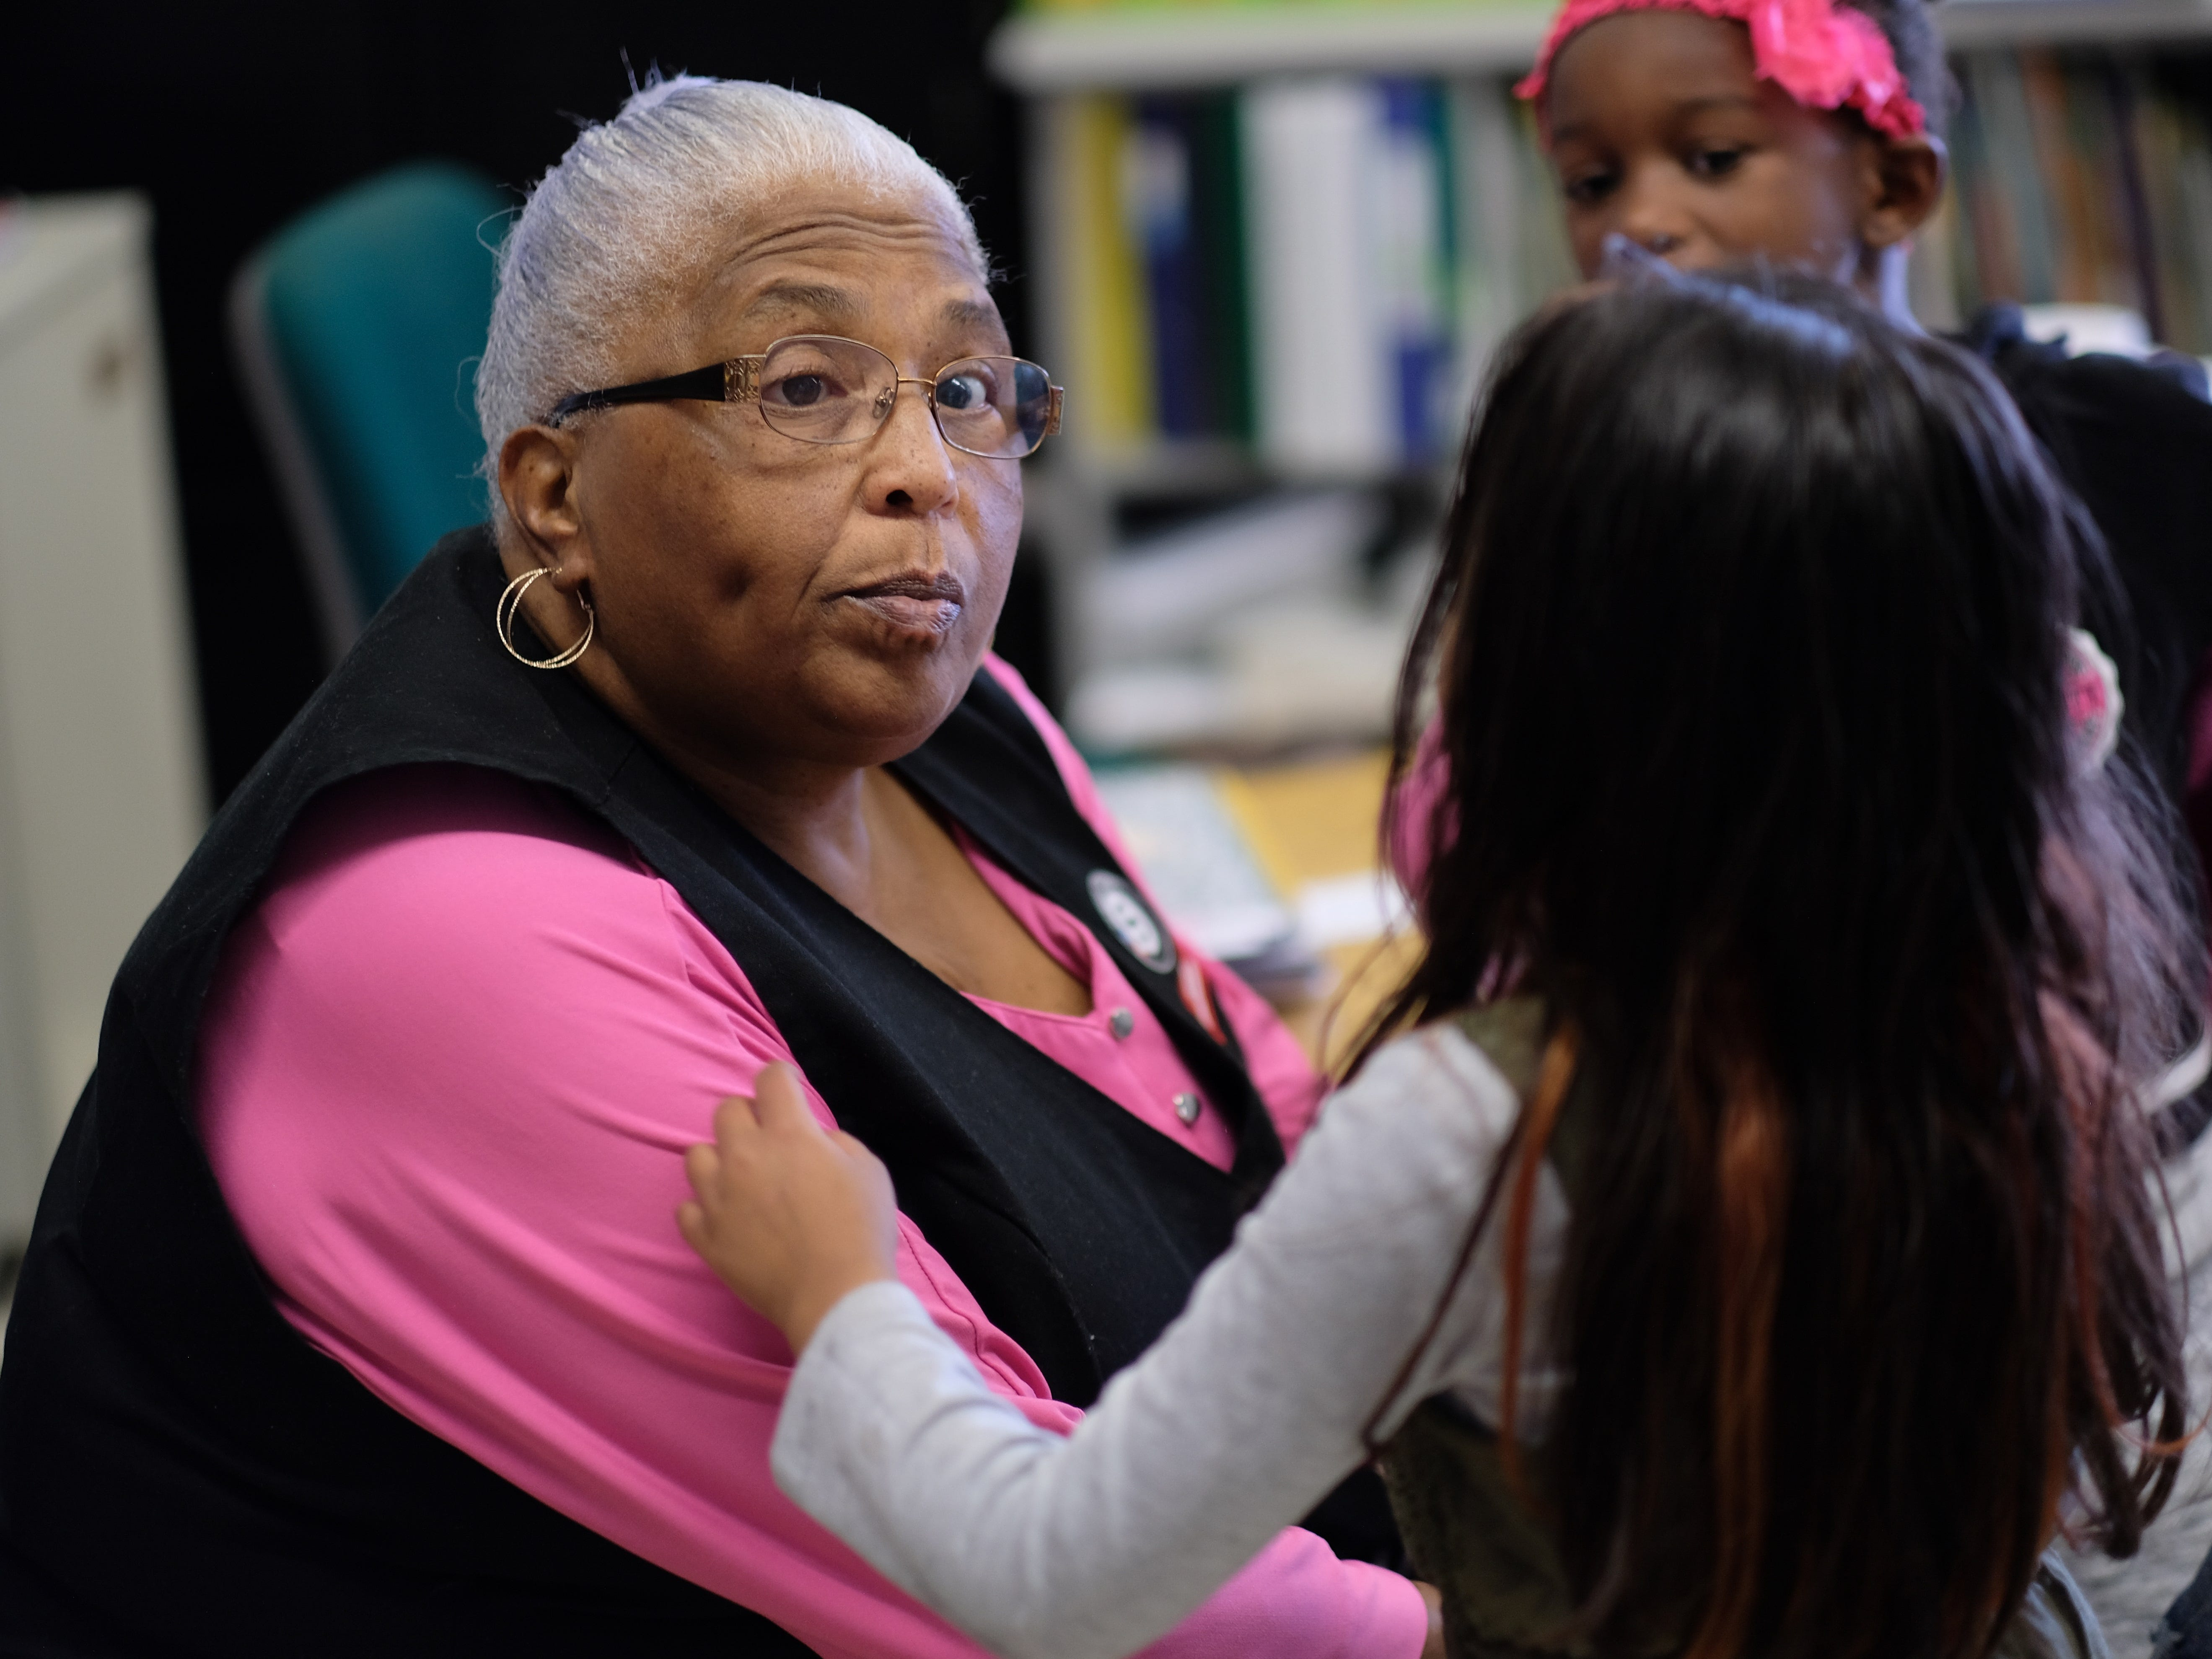 Foster Grandparent Lena Morrison attends to kindergartners during class at Green Magnet Academy on Wednesday, November 7, 2018 in Knoxville. Morrison has been serving as a Foster Grandparent along with her sister Hattie Crockett for three years in Knoxville.